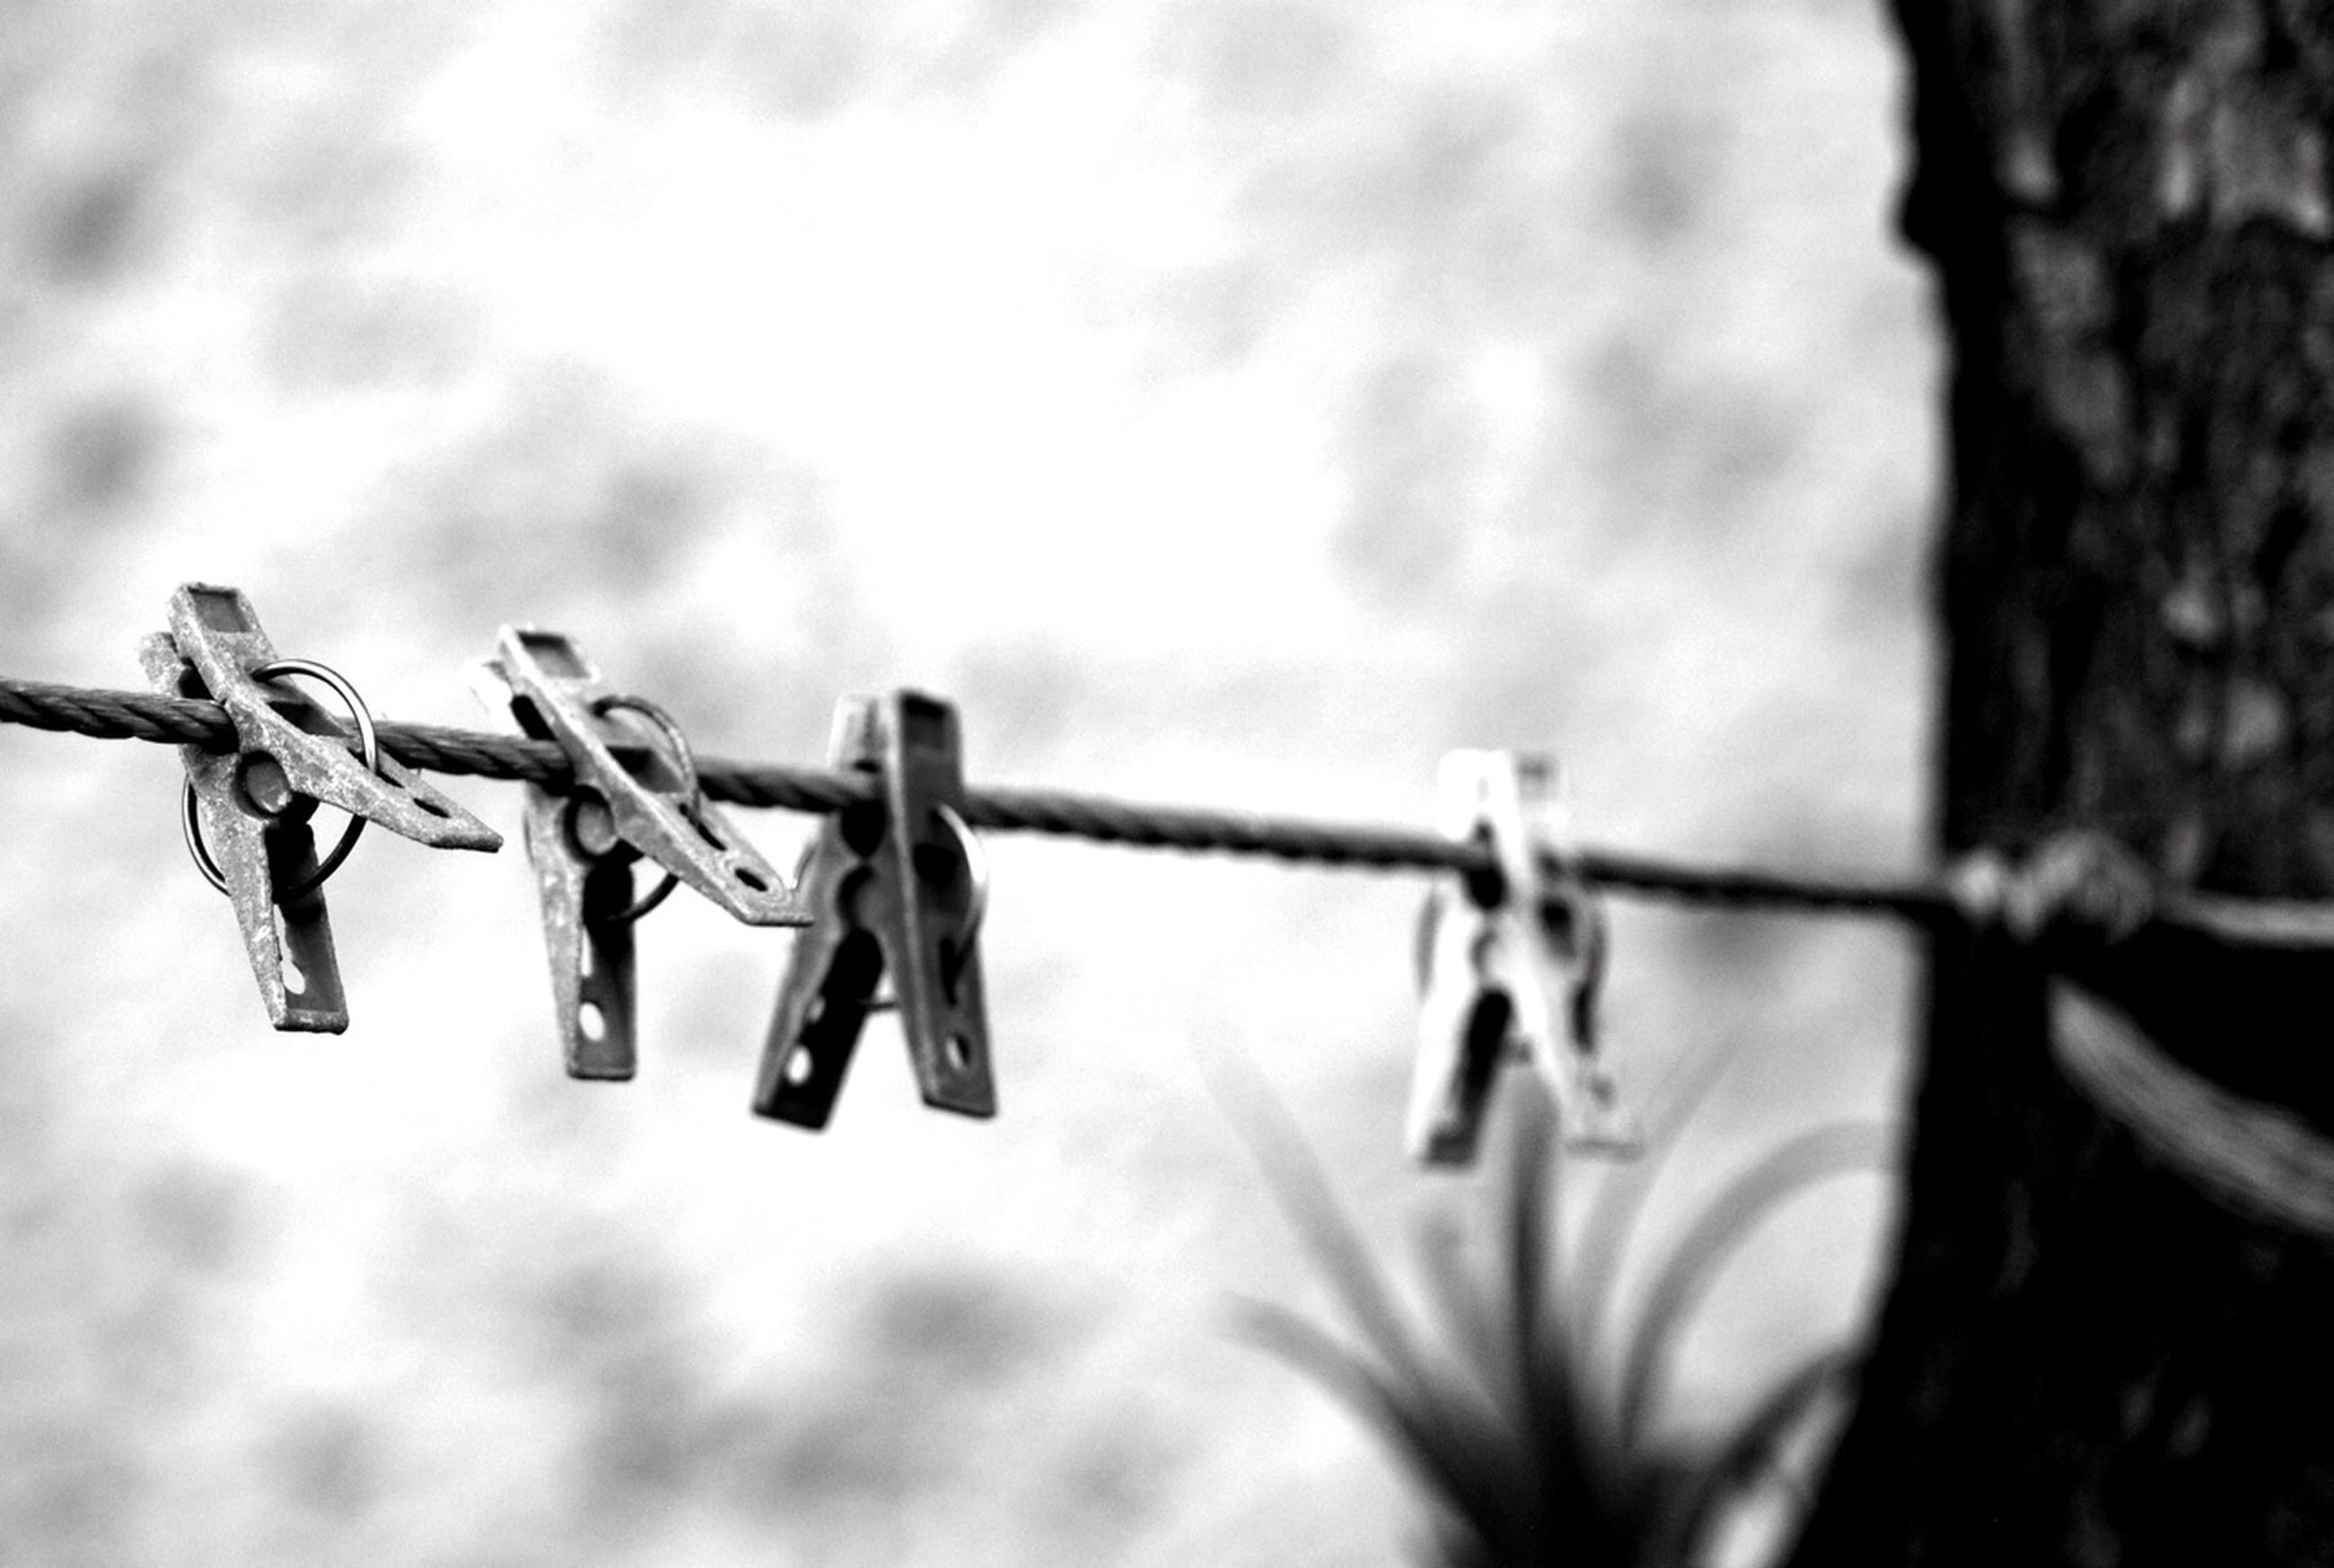 metal, close-up, sky, safety, security, protection, focus on foreground, fence, barbed wire, sharp, metallic, in a row, day, hanging, outdoors, no people, cloud - sky, selective focus, weather, low angle view